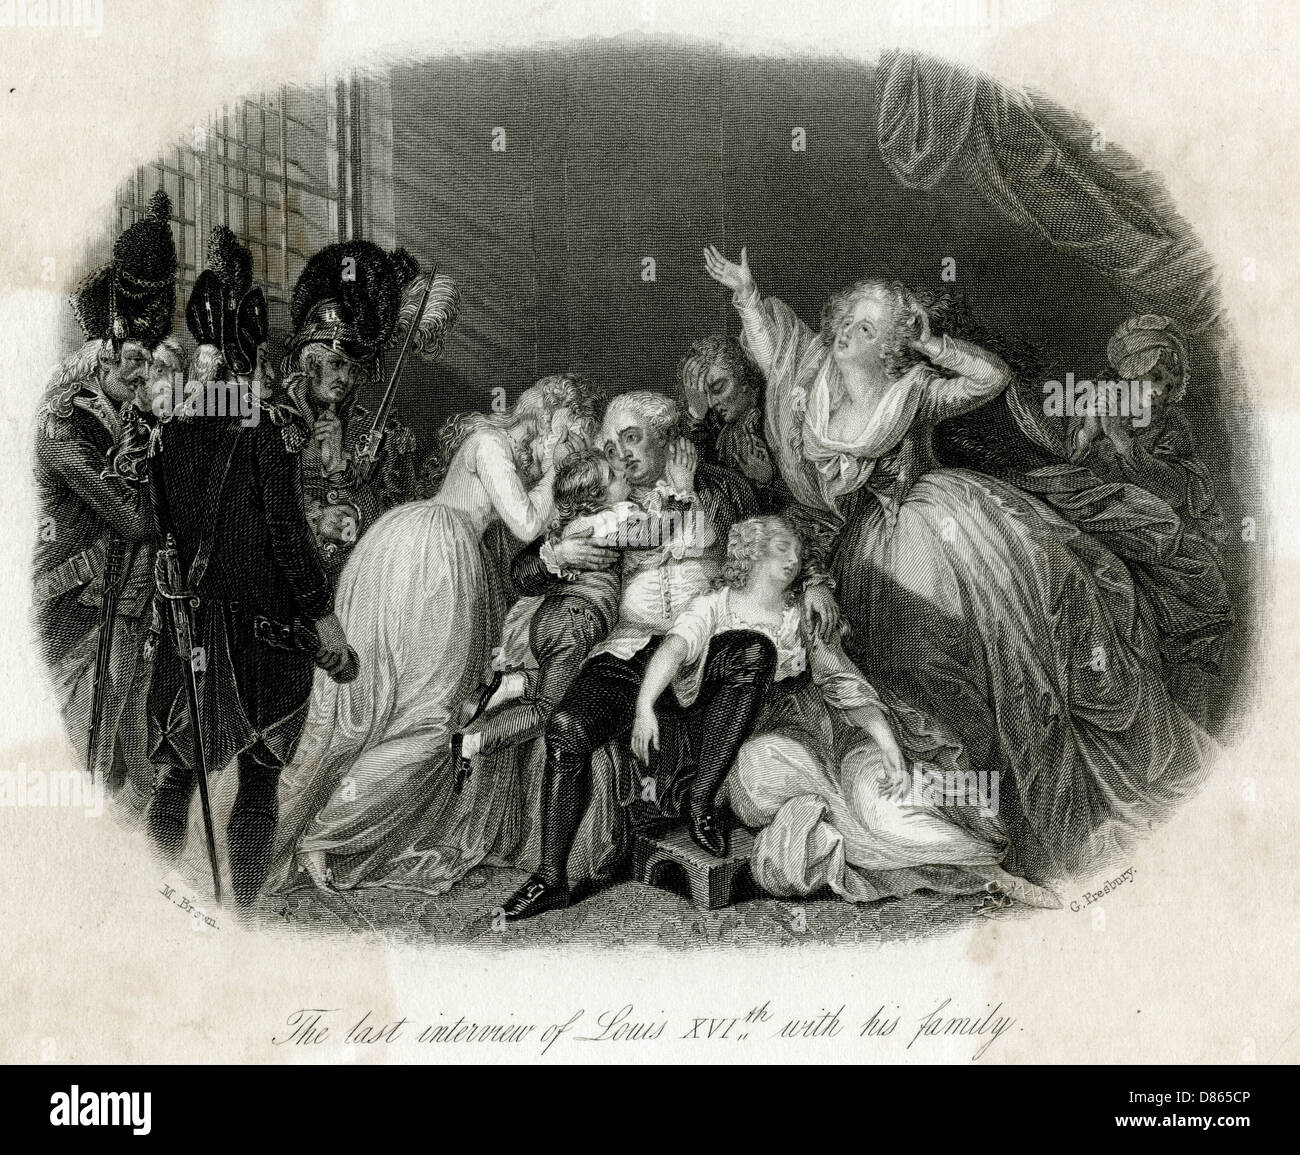 Louis Xvi With His Family For The Last Time - Stock Image